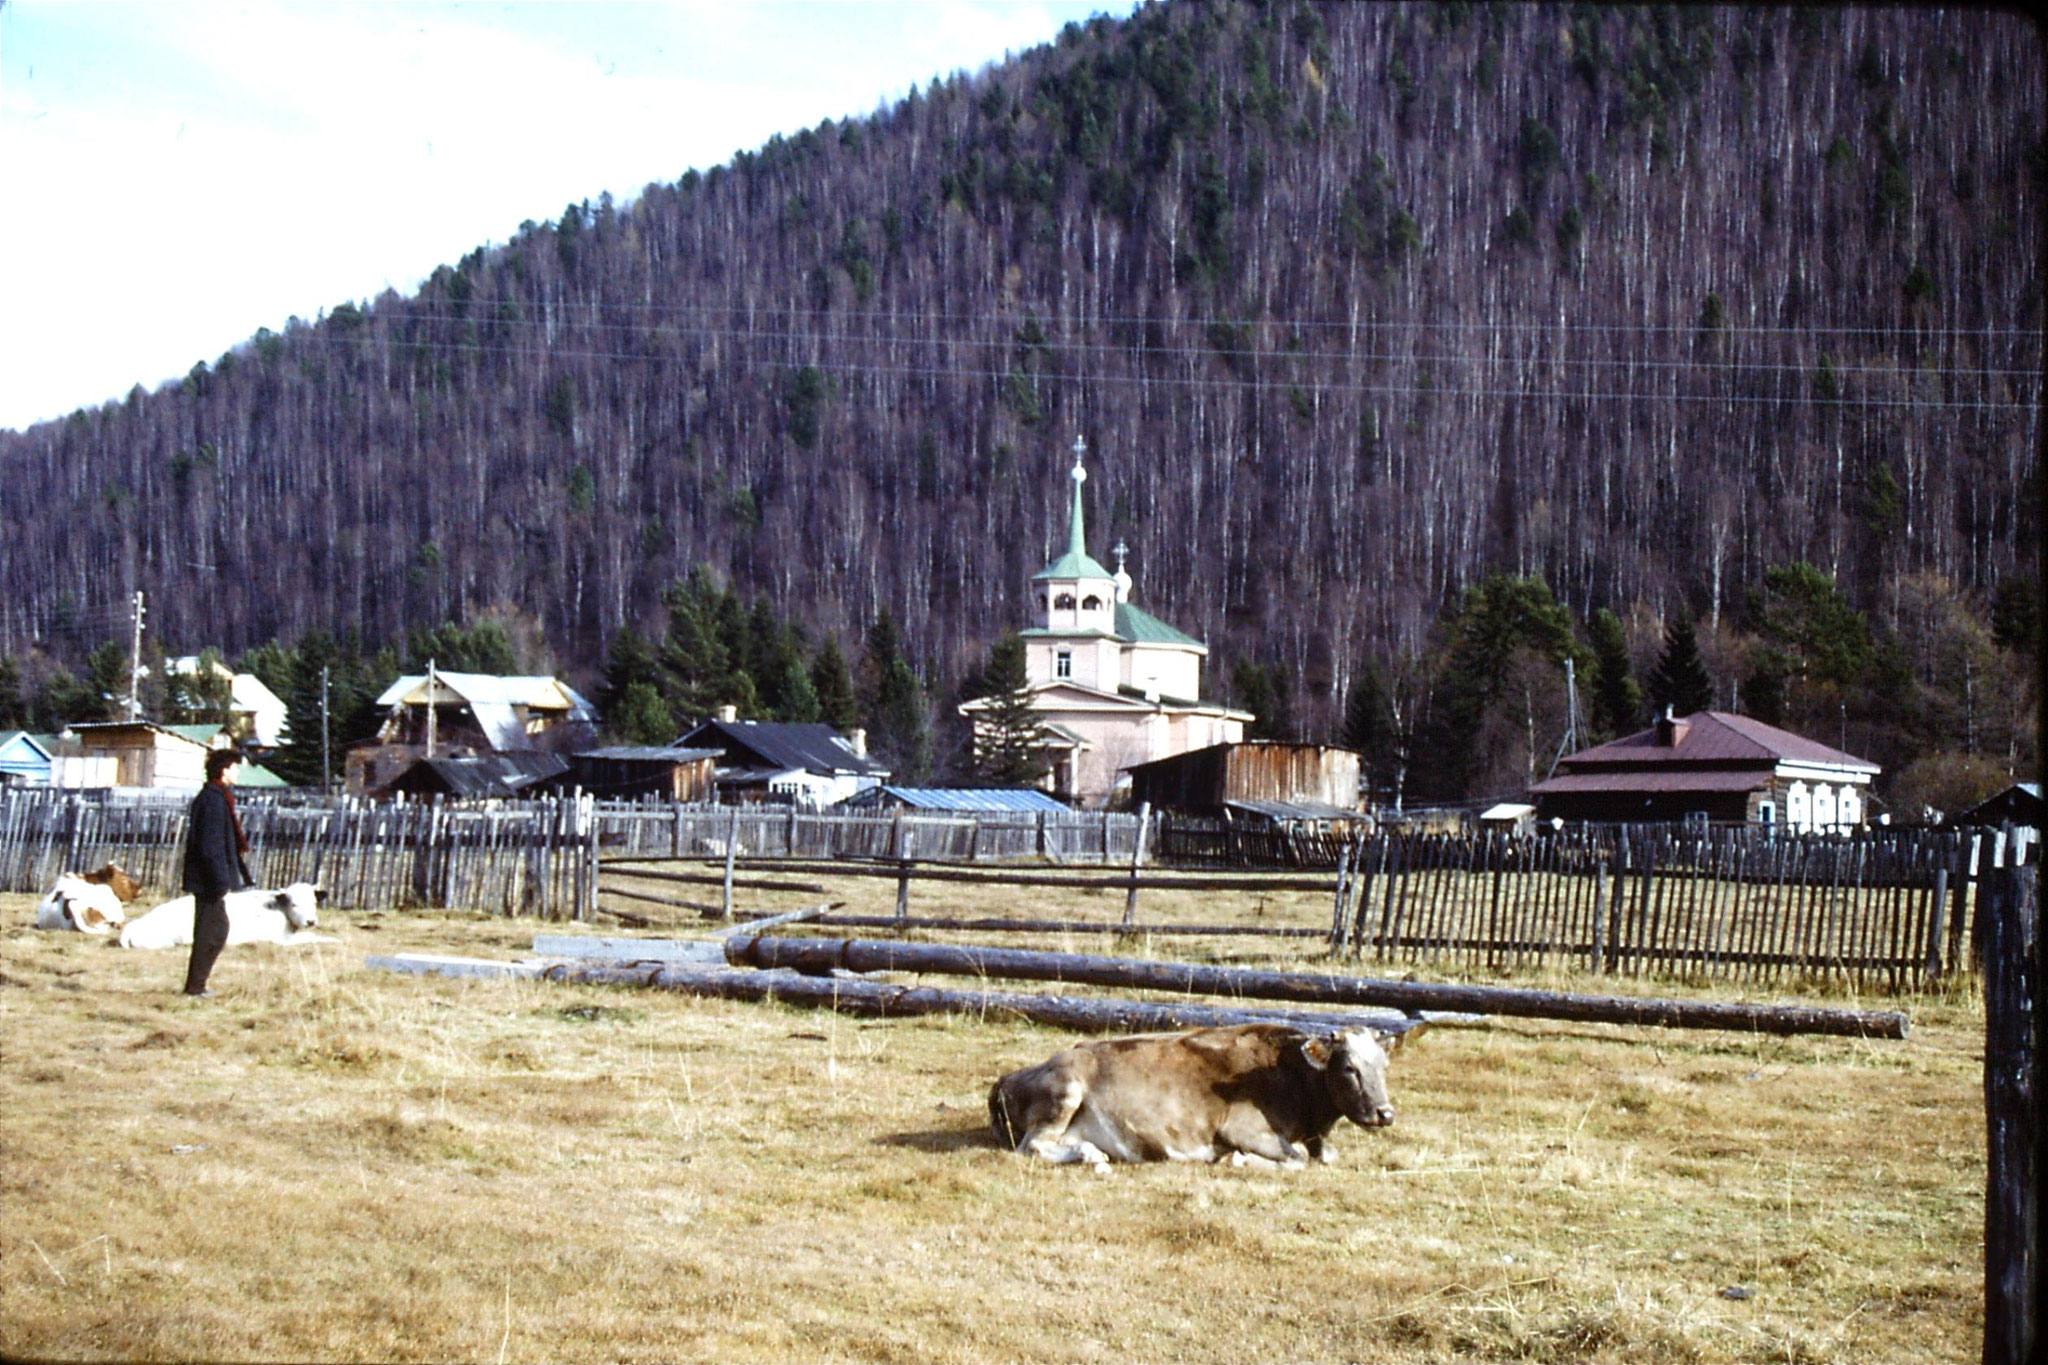 23/10/1988: 30: Lake Baikal Listvyanka St Nikolaus Church